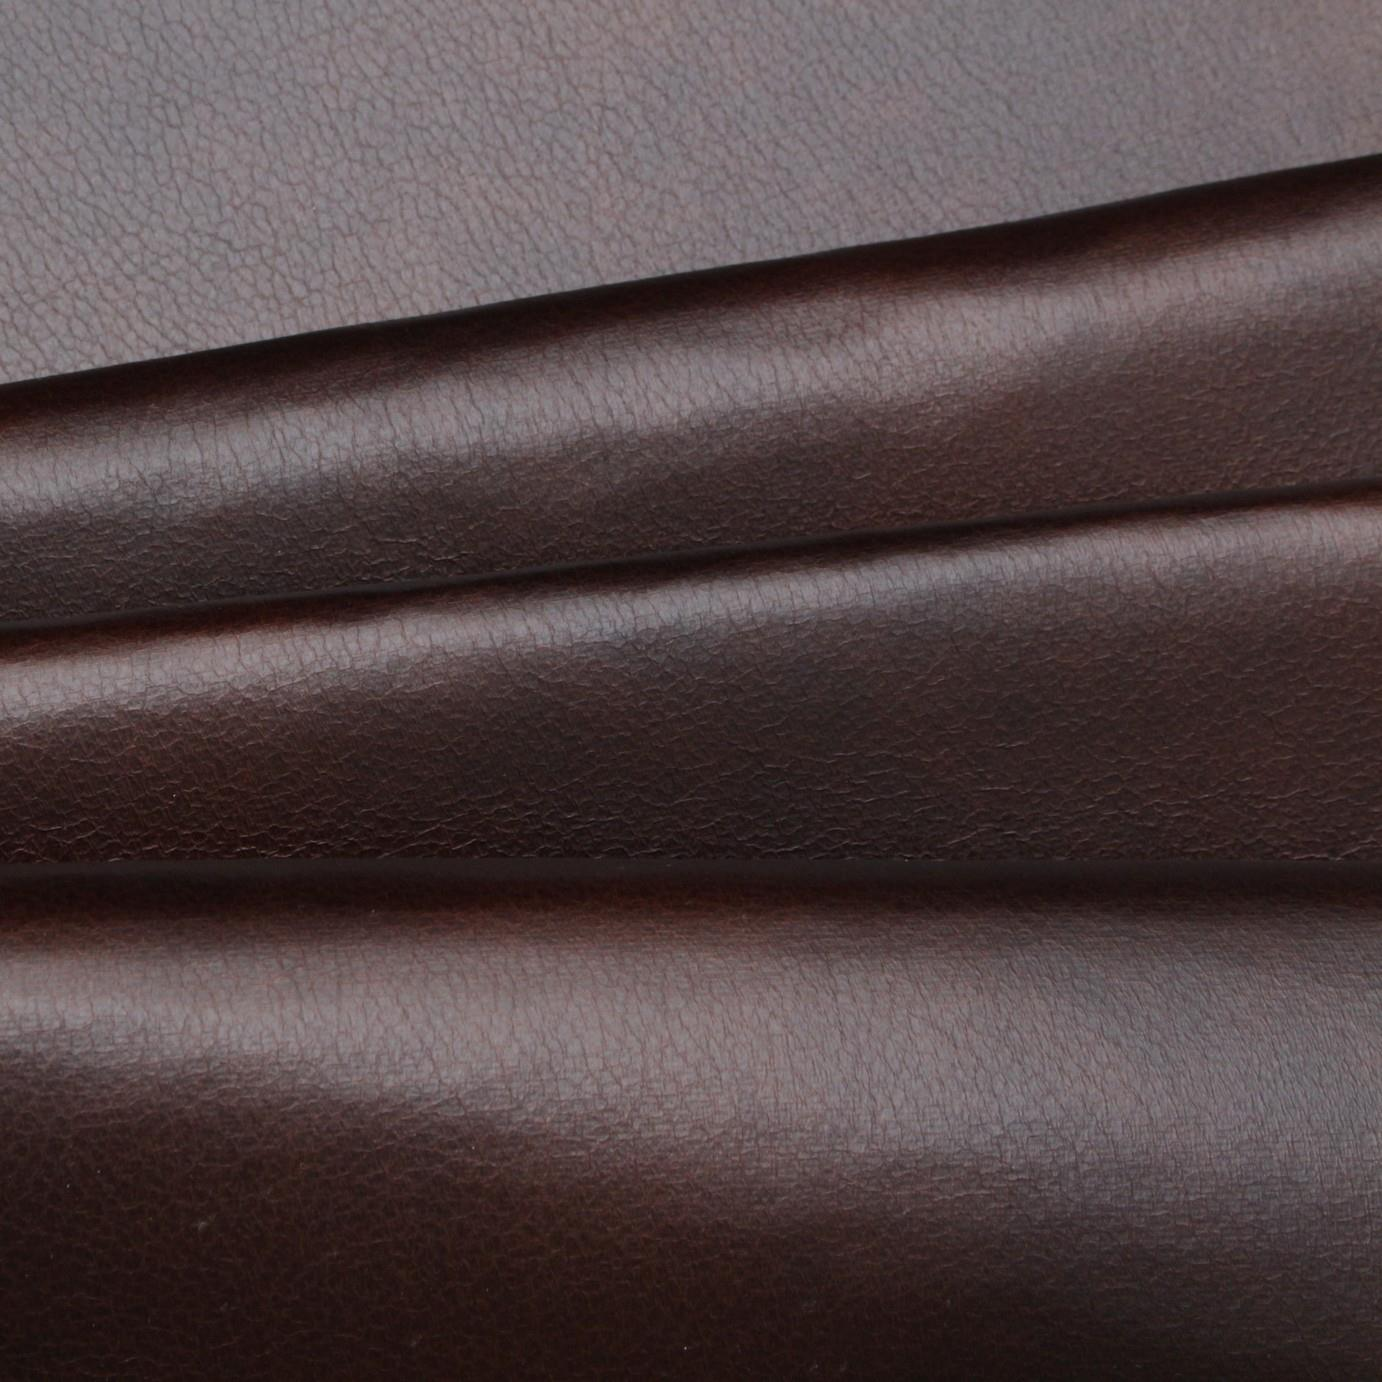 Antique distressed look faux leather upholstery fabric for Fake leather upholstery